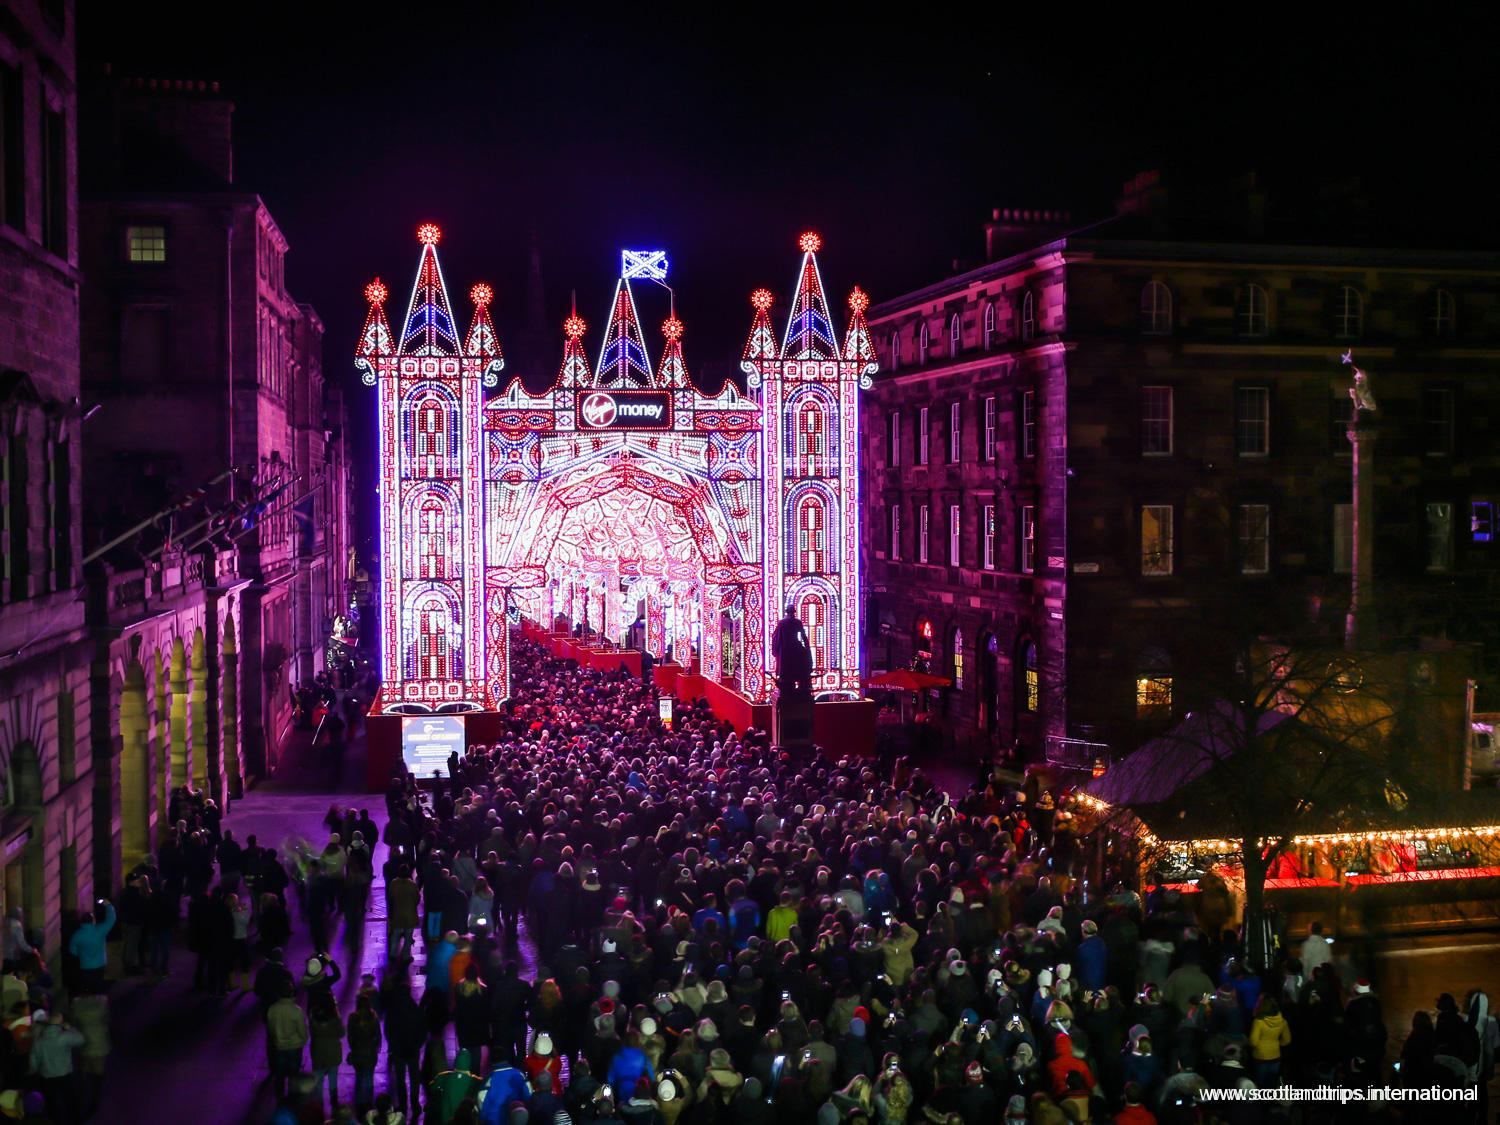 Navidades en Edimburgo - Royal Mile